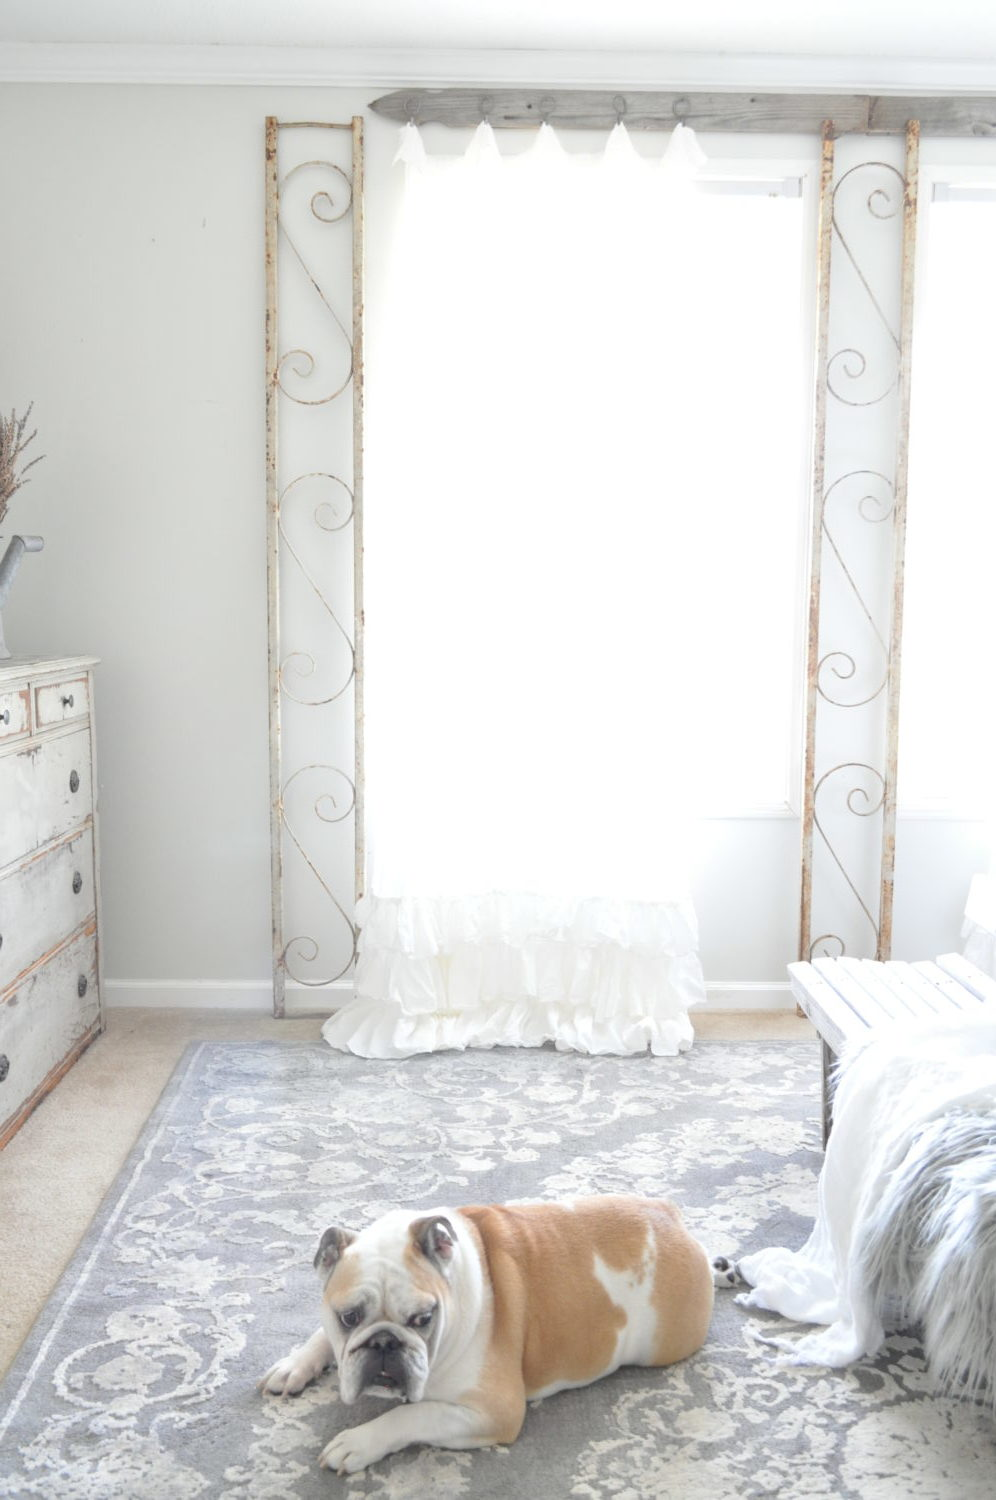 Creative Ways To Hang Curtains Becky S Farmhouse,What Questions To Ask When Buying A House